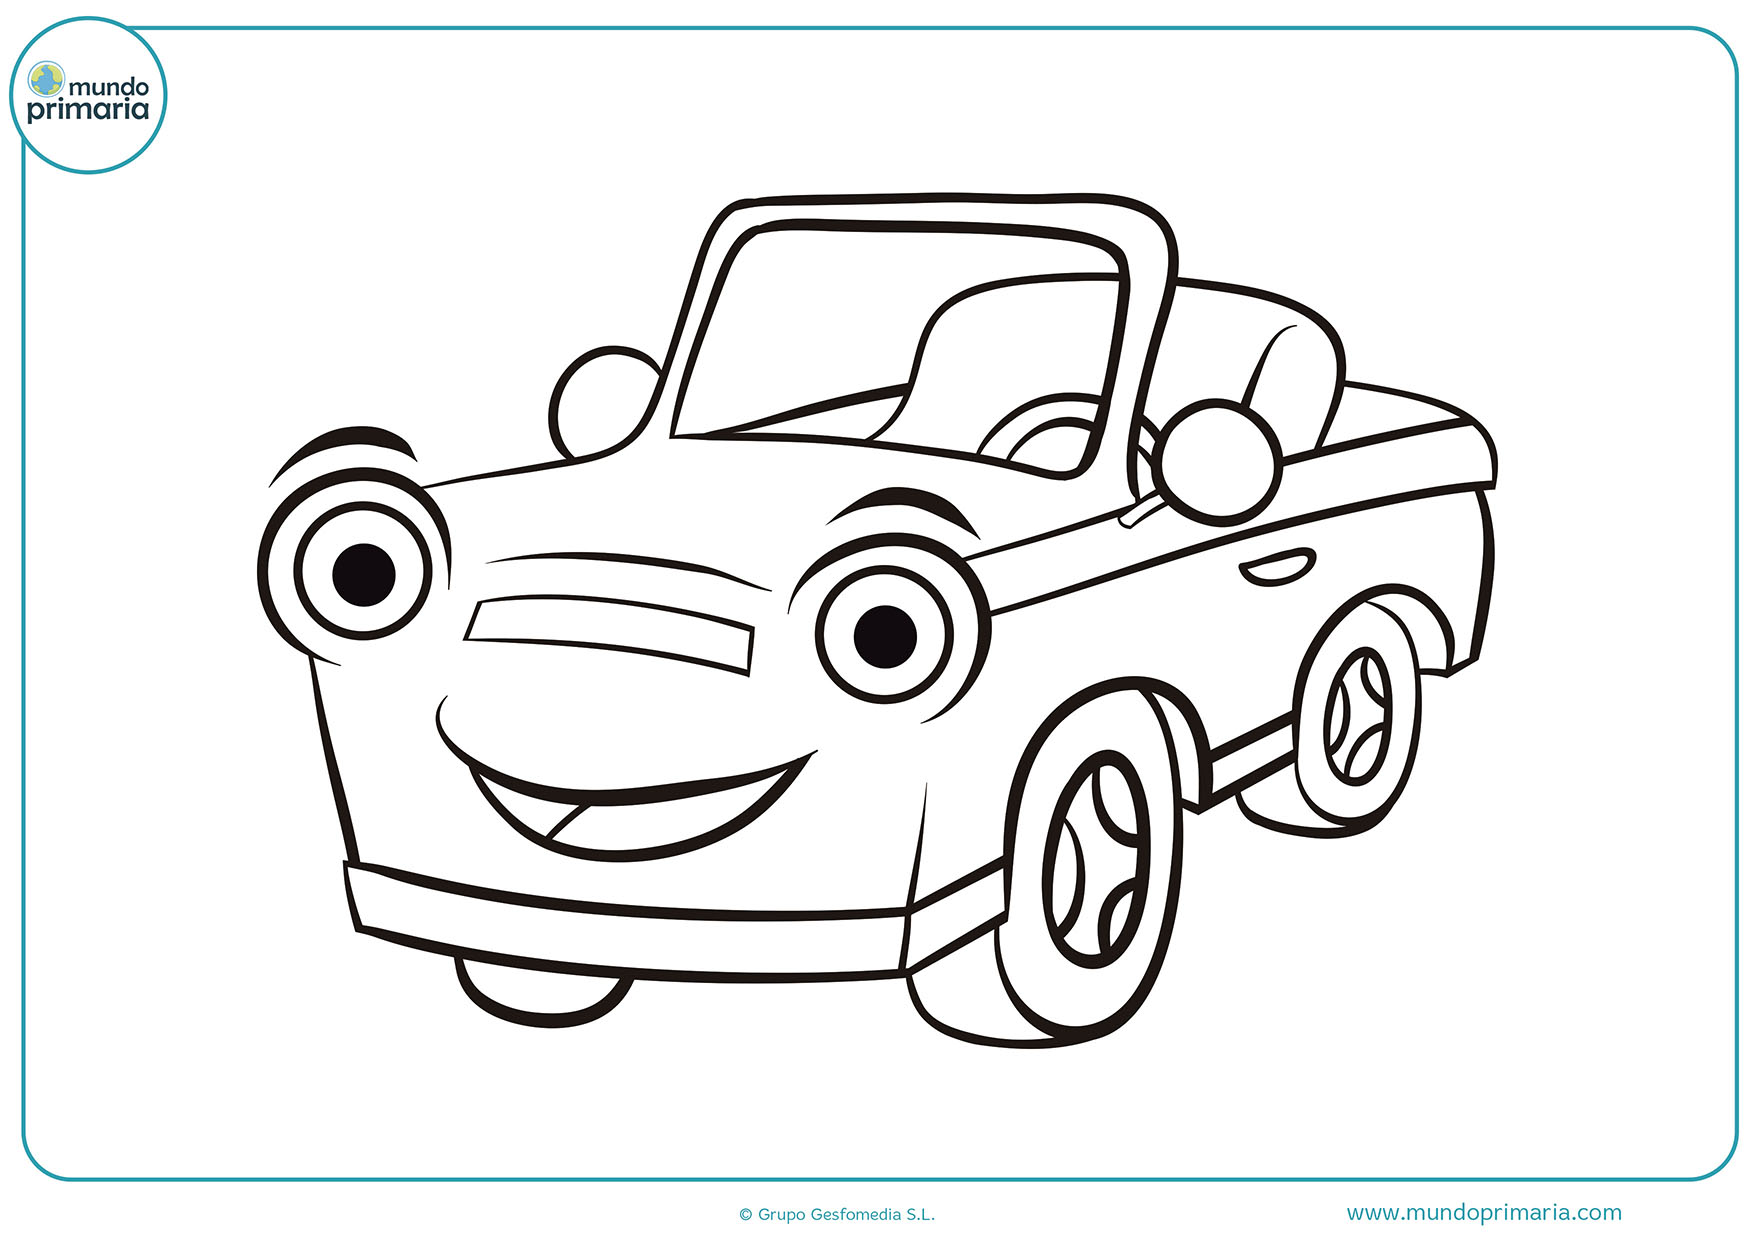 List of Synonyms and Antonyms of the Word: dibujo coche